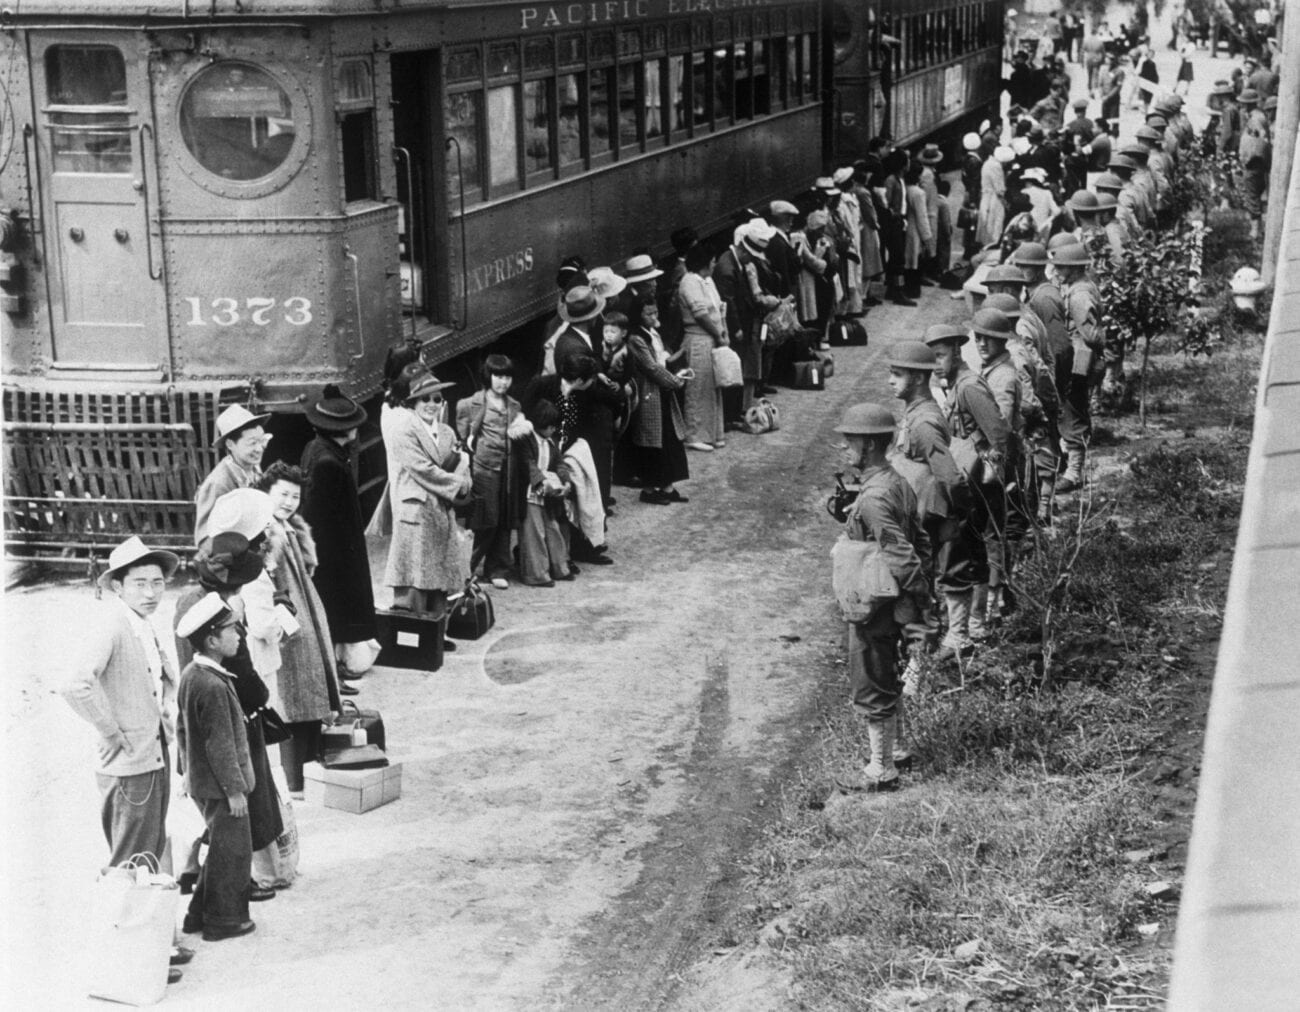 Why is today a Day of Remembrance? Learn the tragic history of the Japanese Internment and Executive Order 9066 here.